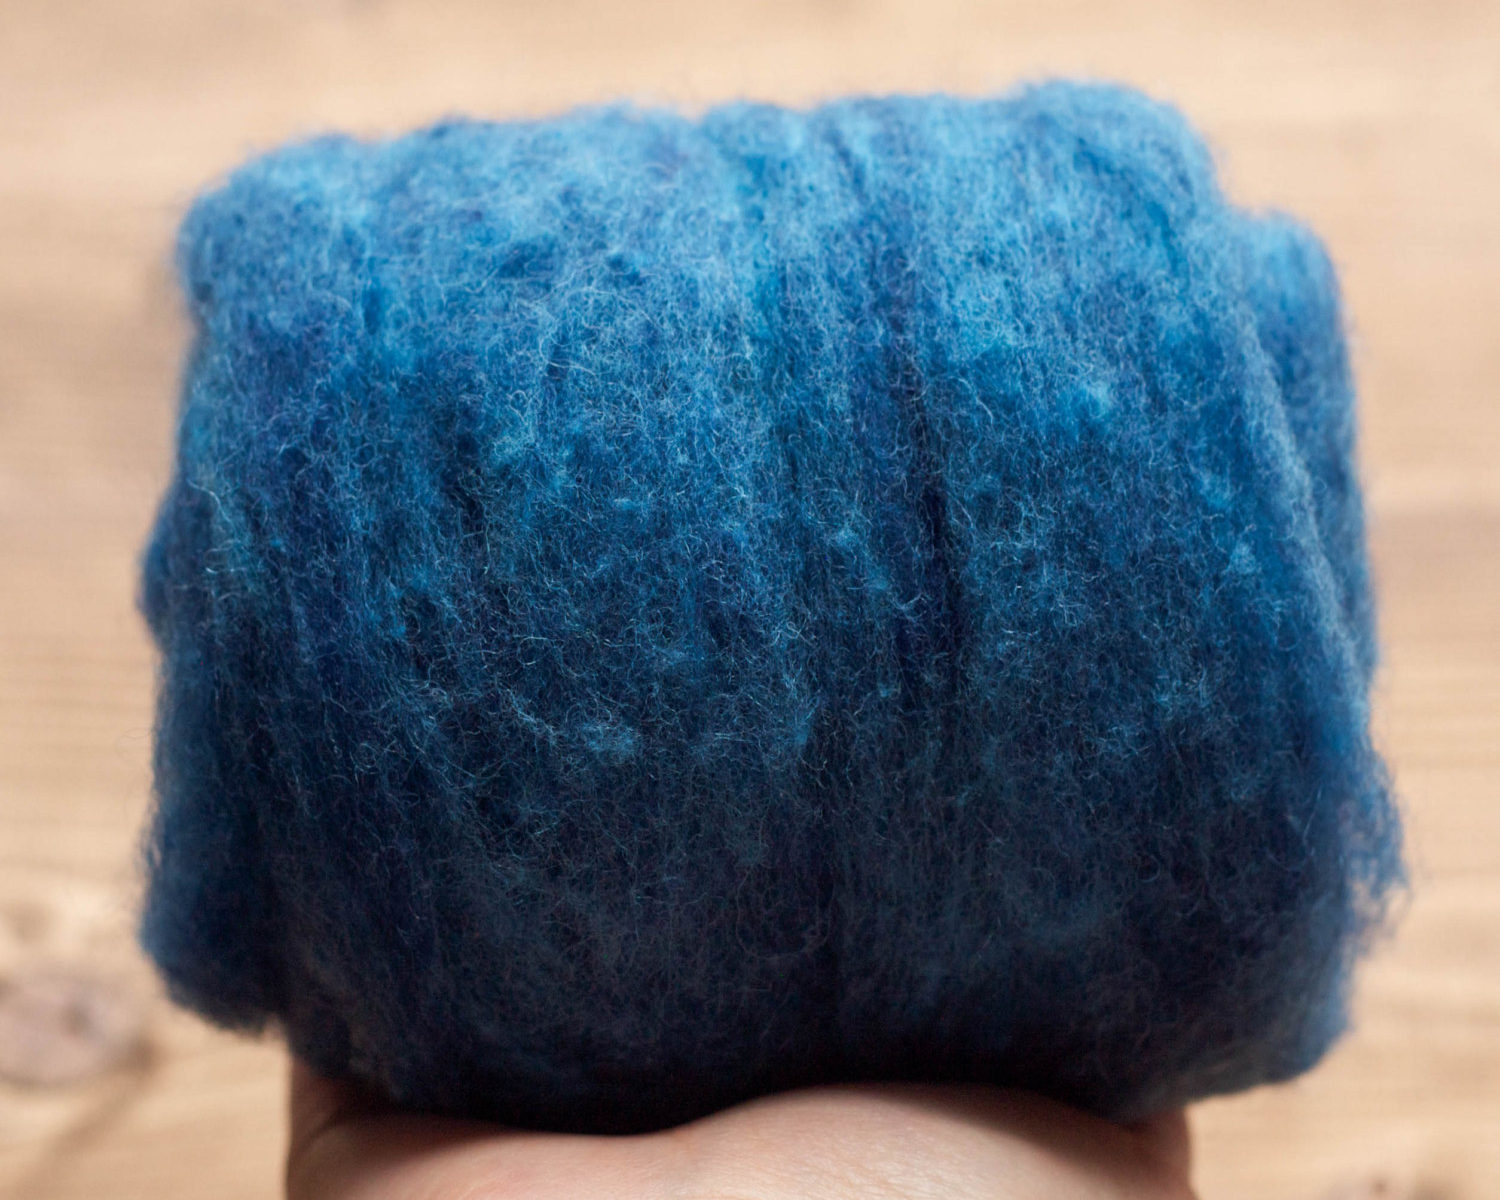 Indigo Bunting Blue Needle Felting Wool, Wool Batting, Batts, Fleece, Wet Felting, Spinning, Dyed Felting Wool, Cobalt, Fiber Art Supplies